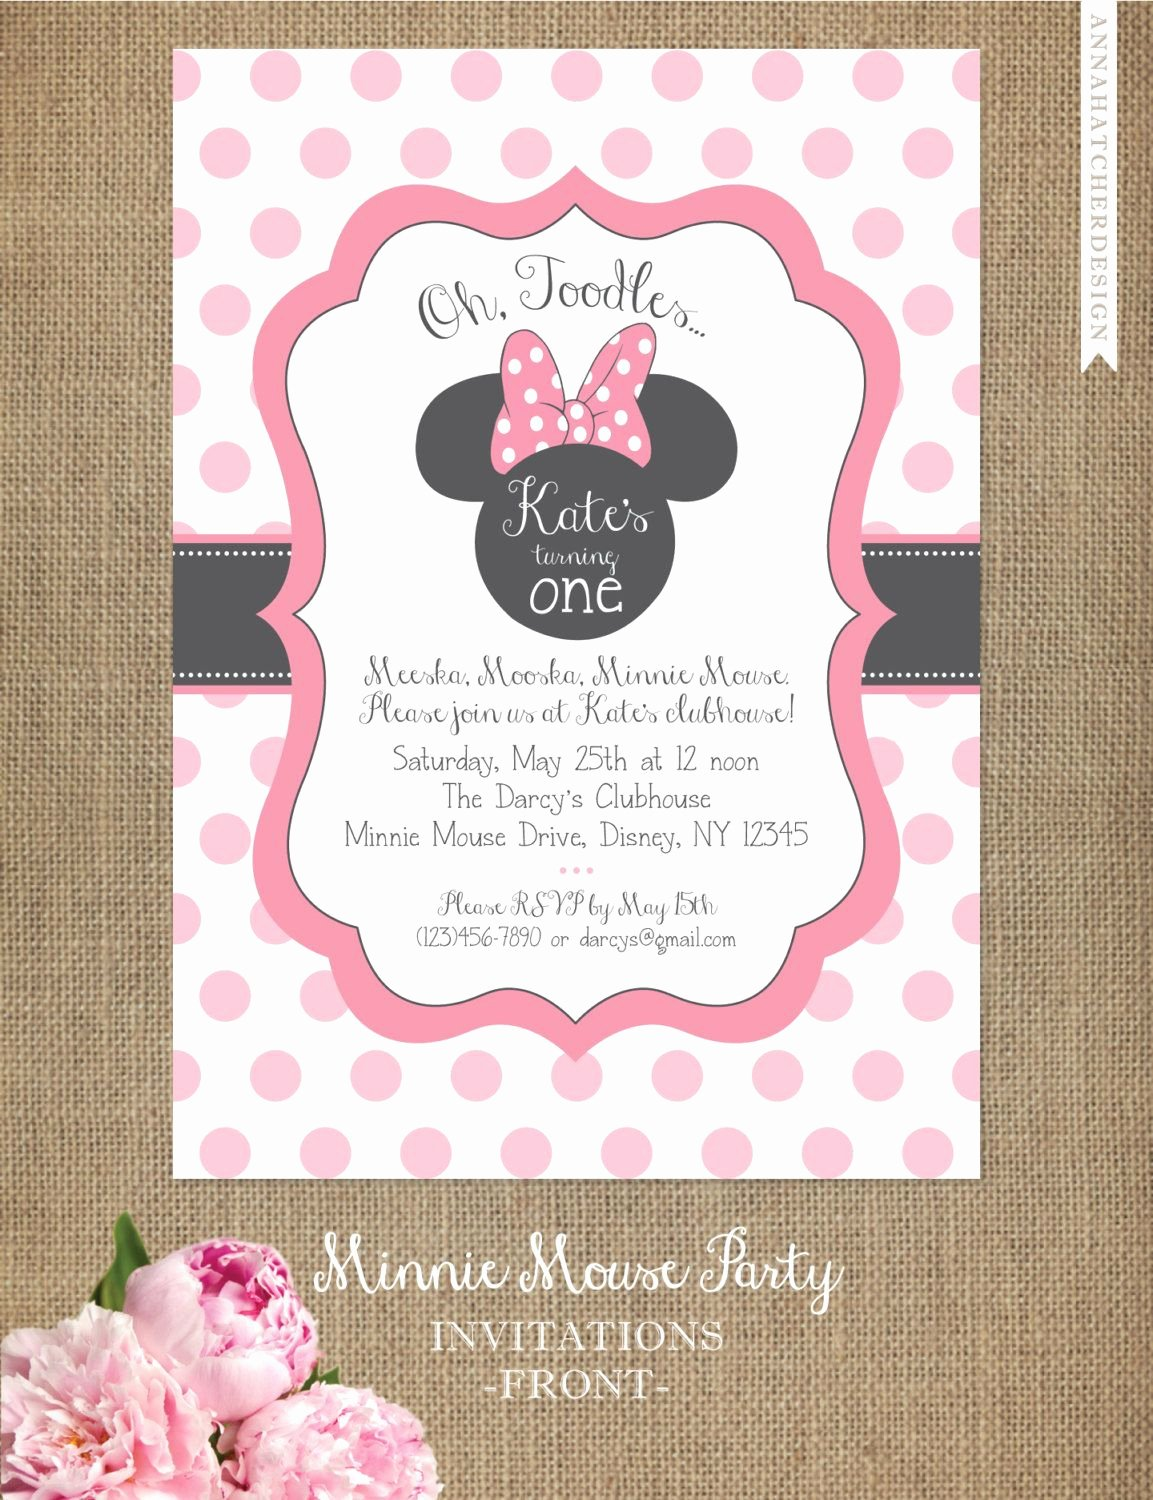 Minnie Mouse Party Invitations New Minnie Mouse Invitation Editable Birthday Invitation